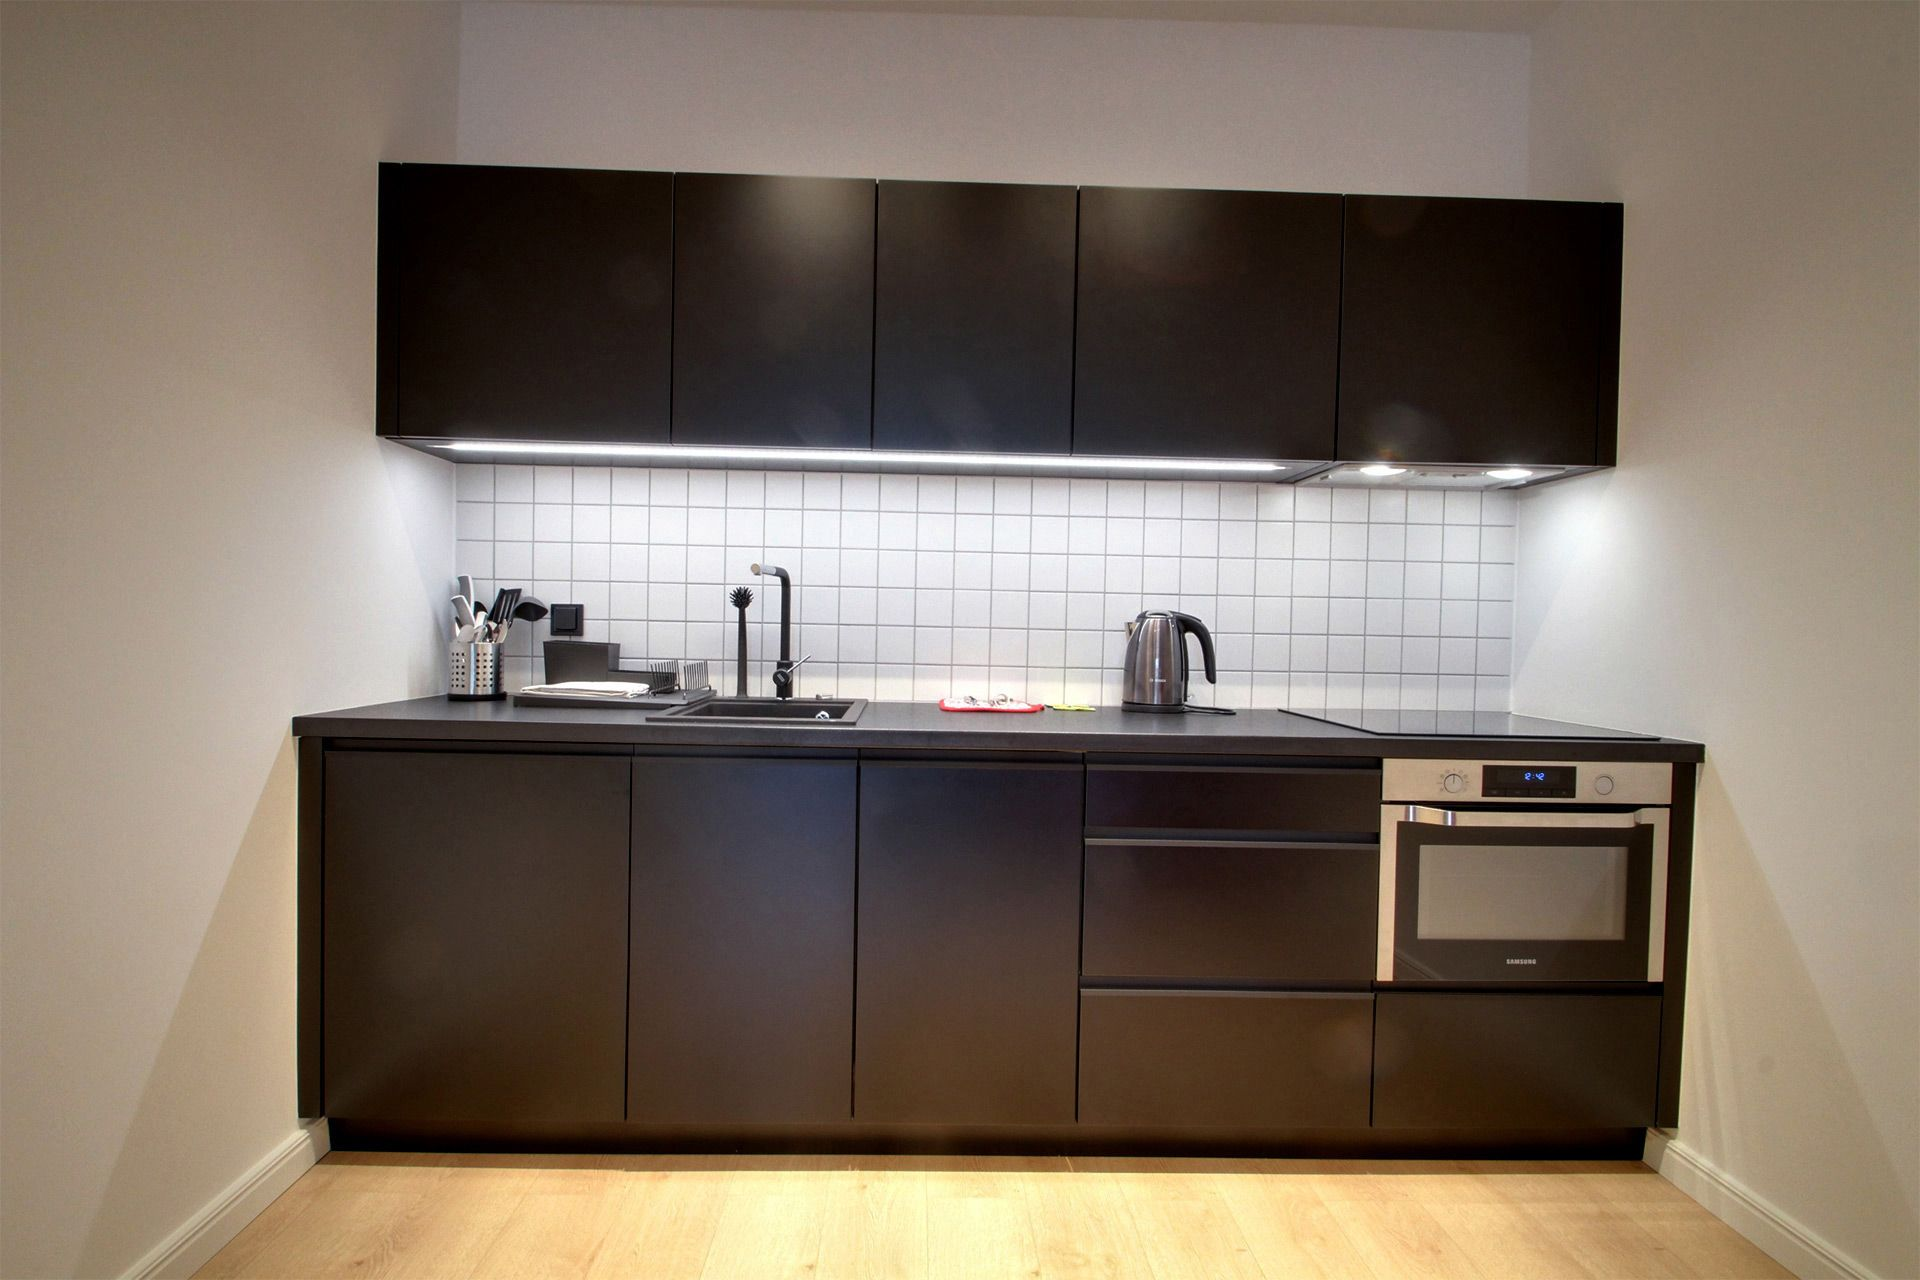 2 Bedroom - Large apartment to rent in Warsaw UPR-A-017-2